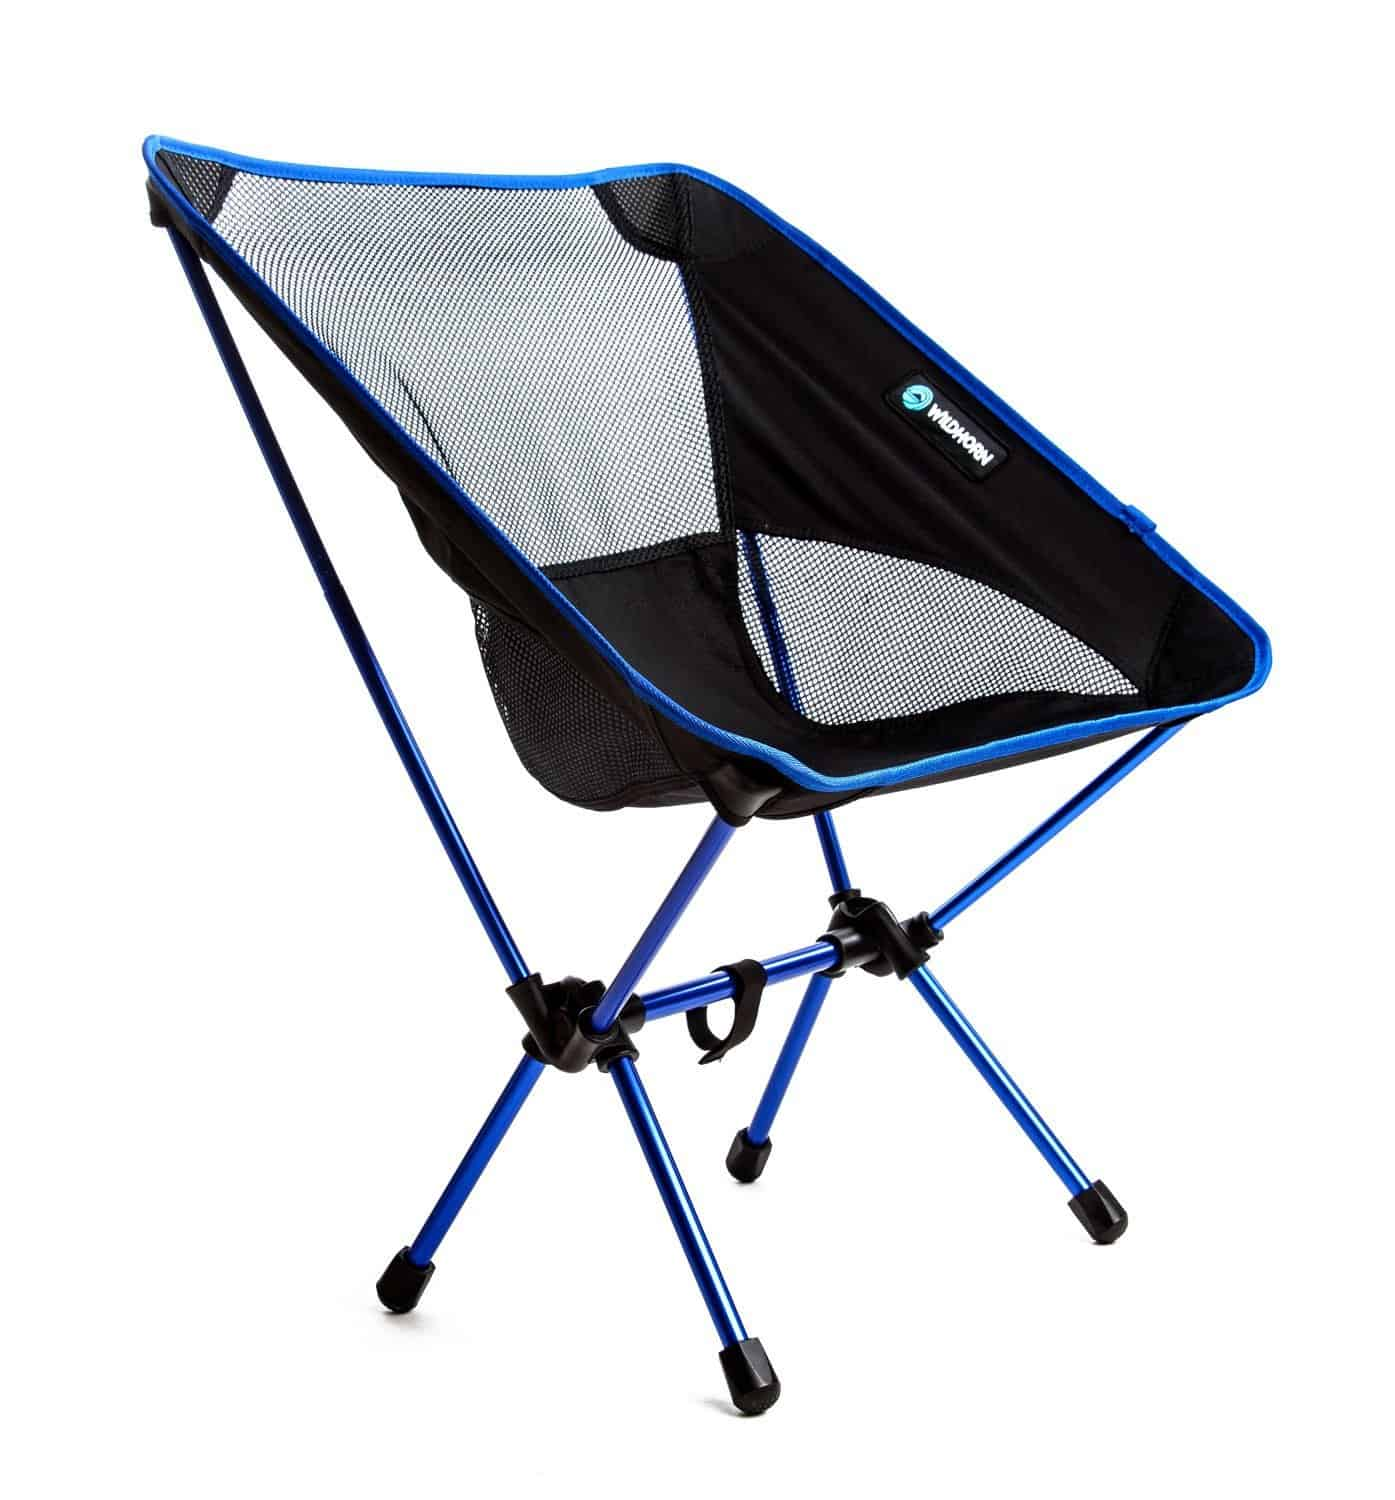 The camping chair with a secret weapon No more sinking in sand & mud